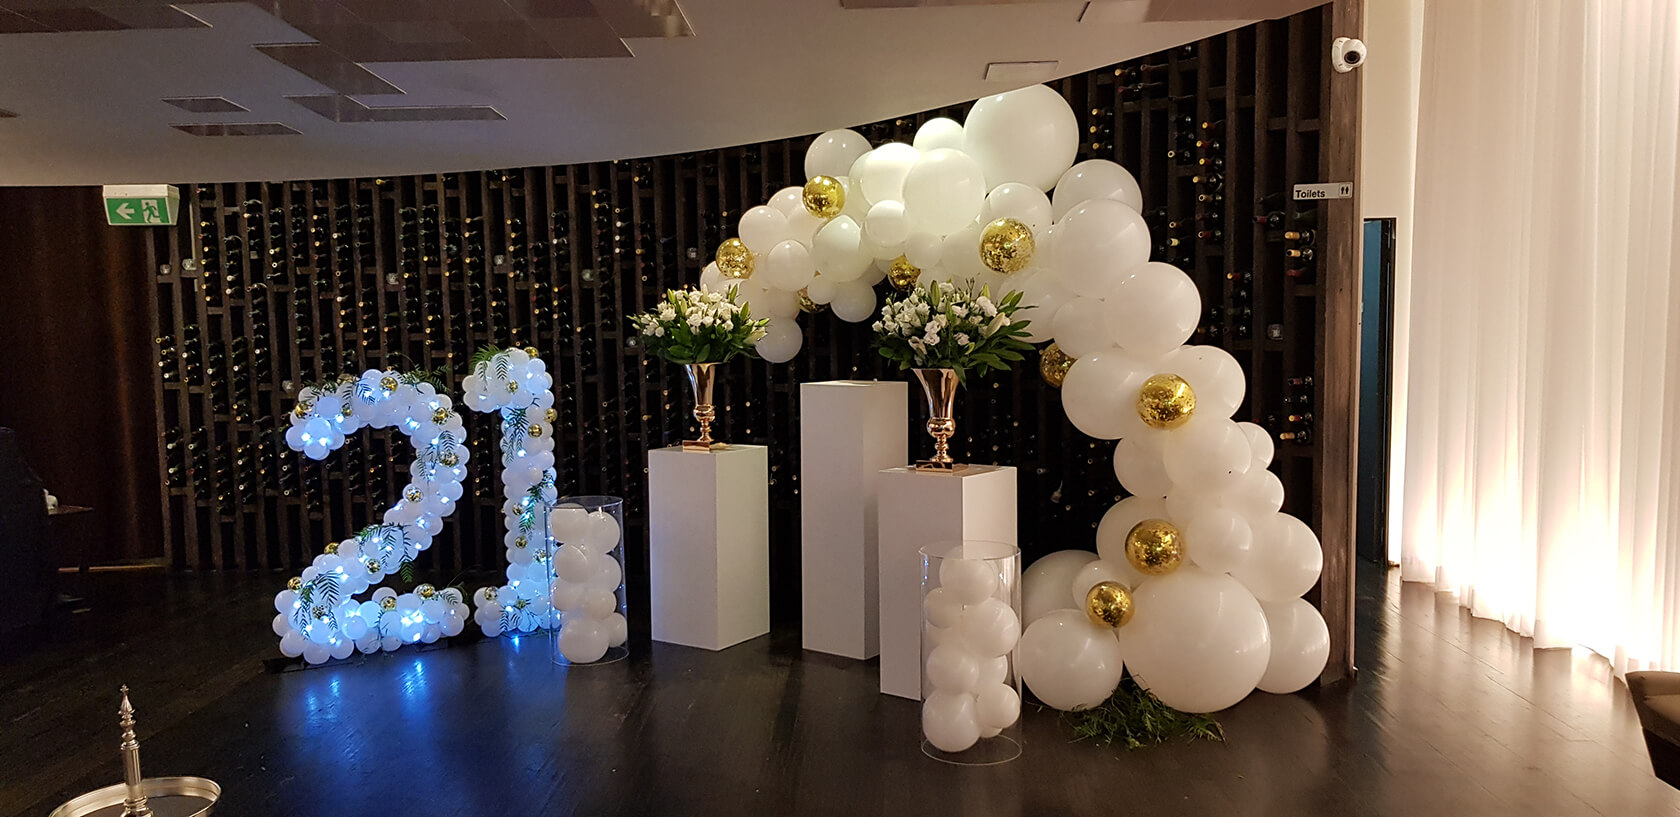 Elegant Balloon Arrangements - see our events - celebration balloons - shivoo balloons and decor specialists in coburg north